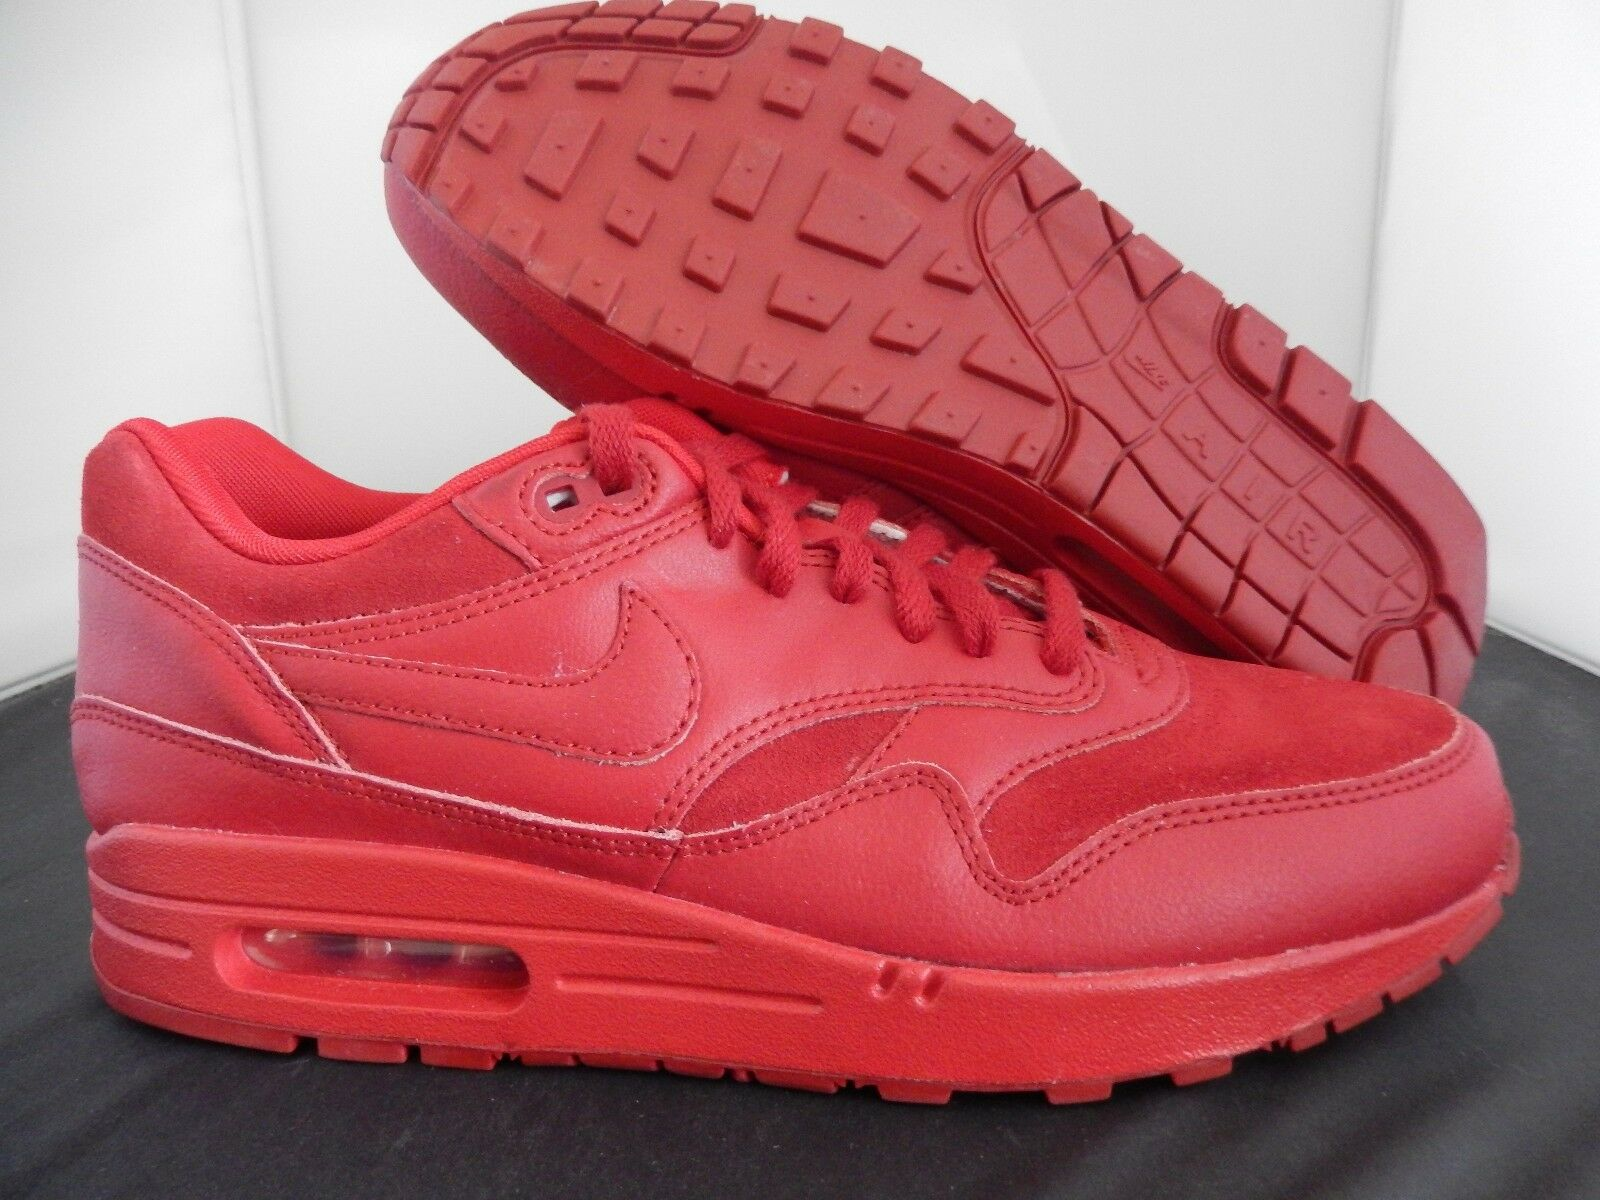 NIKE AIR MAX 1 iD ALL RED SZ 9.5 RED OCTOBER RARE!!